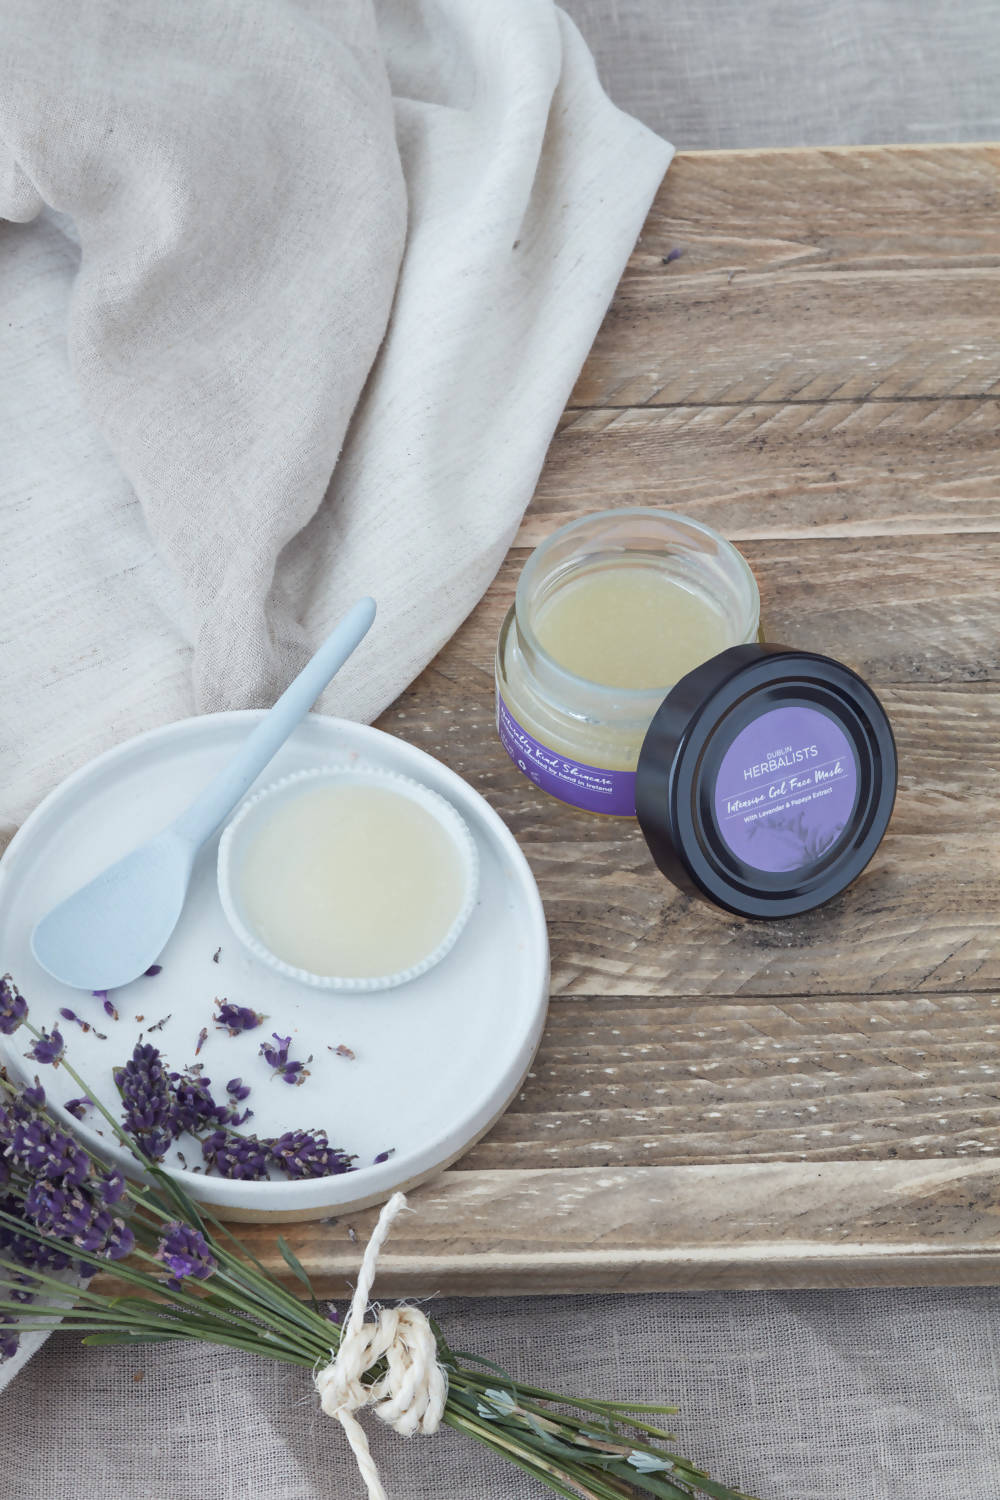 Dublin Herbalists Intensive Gel Face Mask- With Lavender & Vitamin E